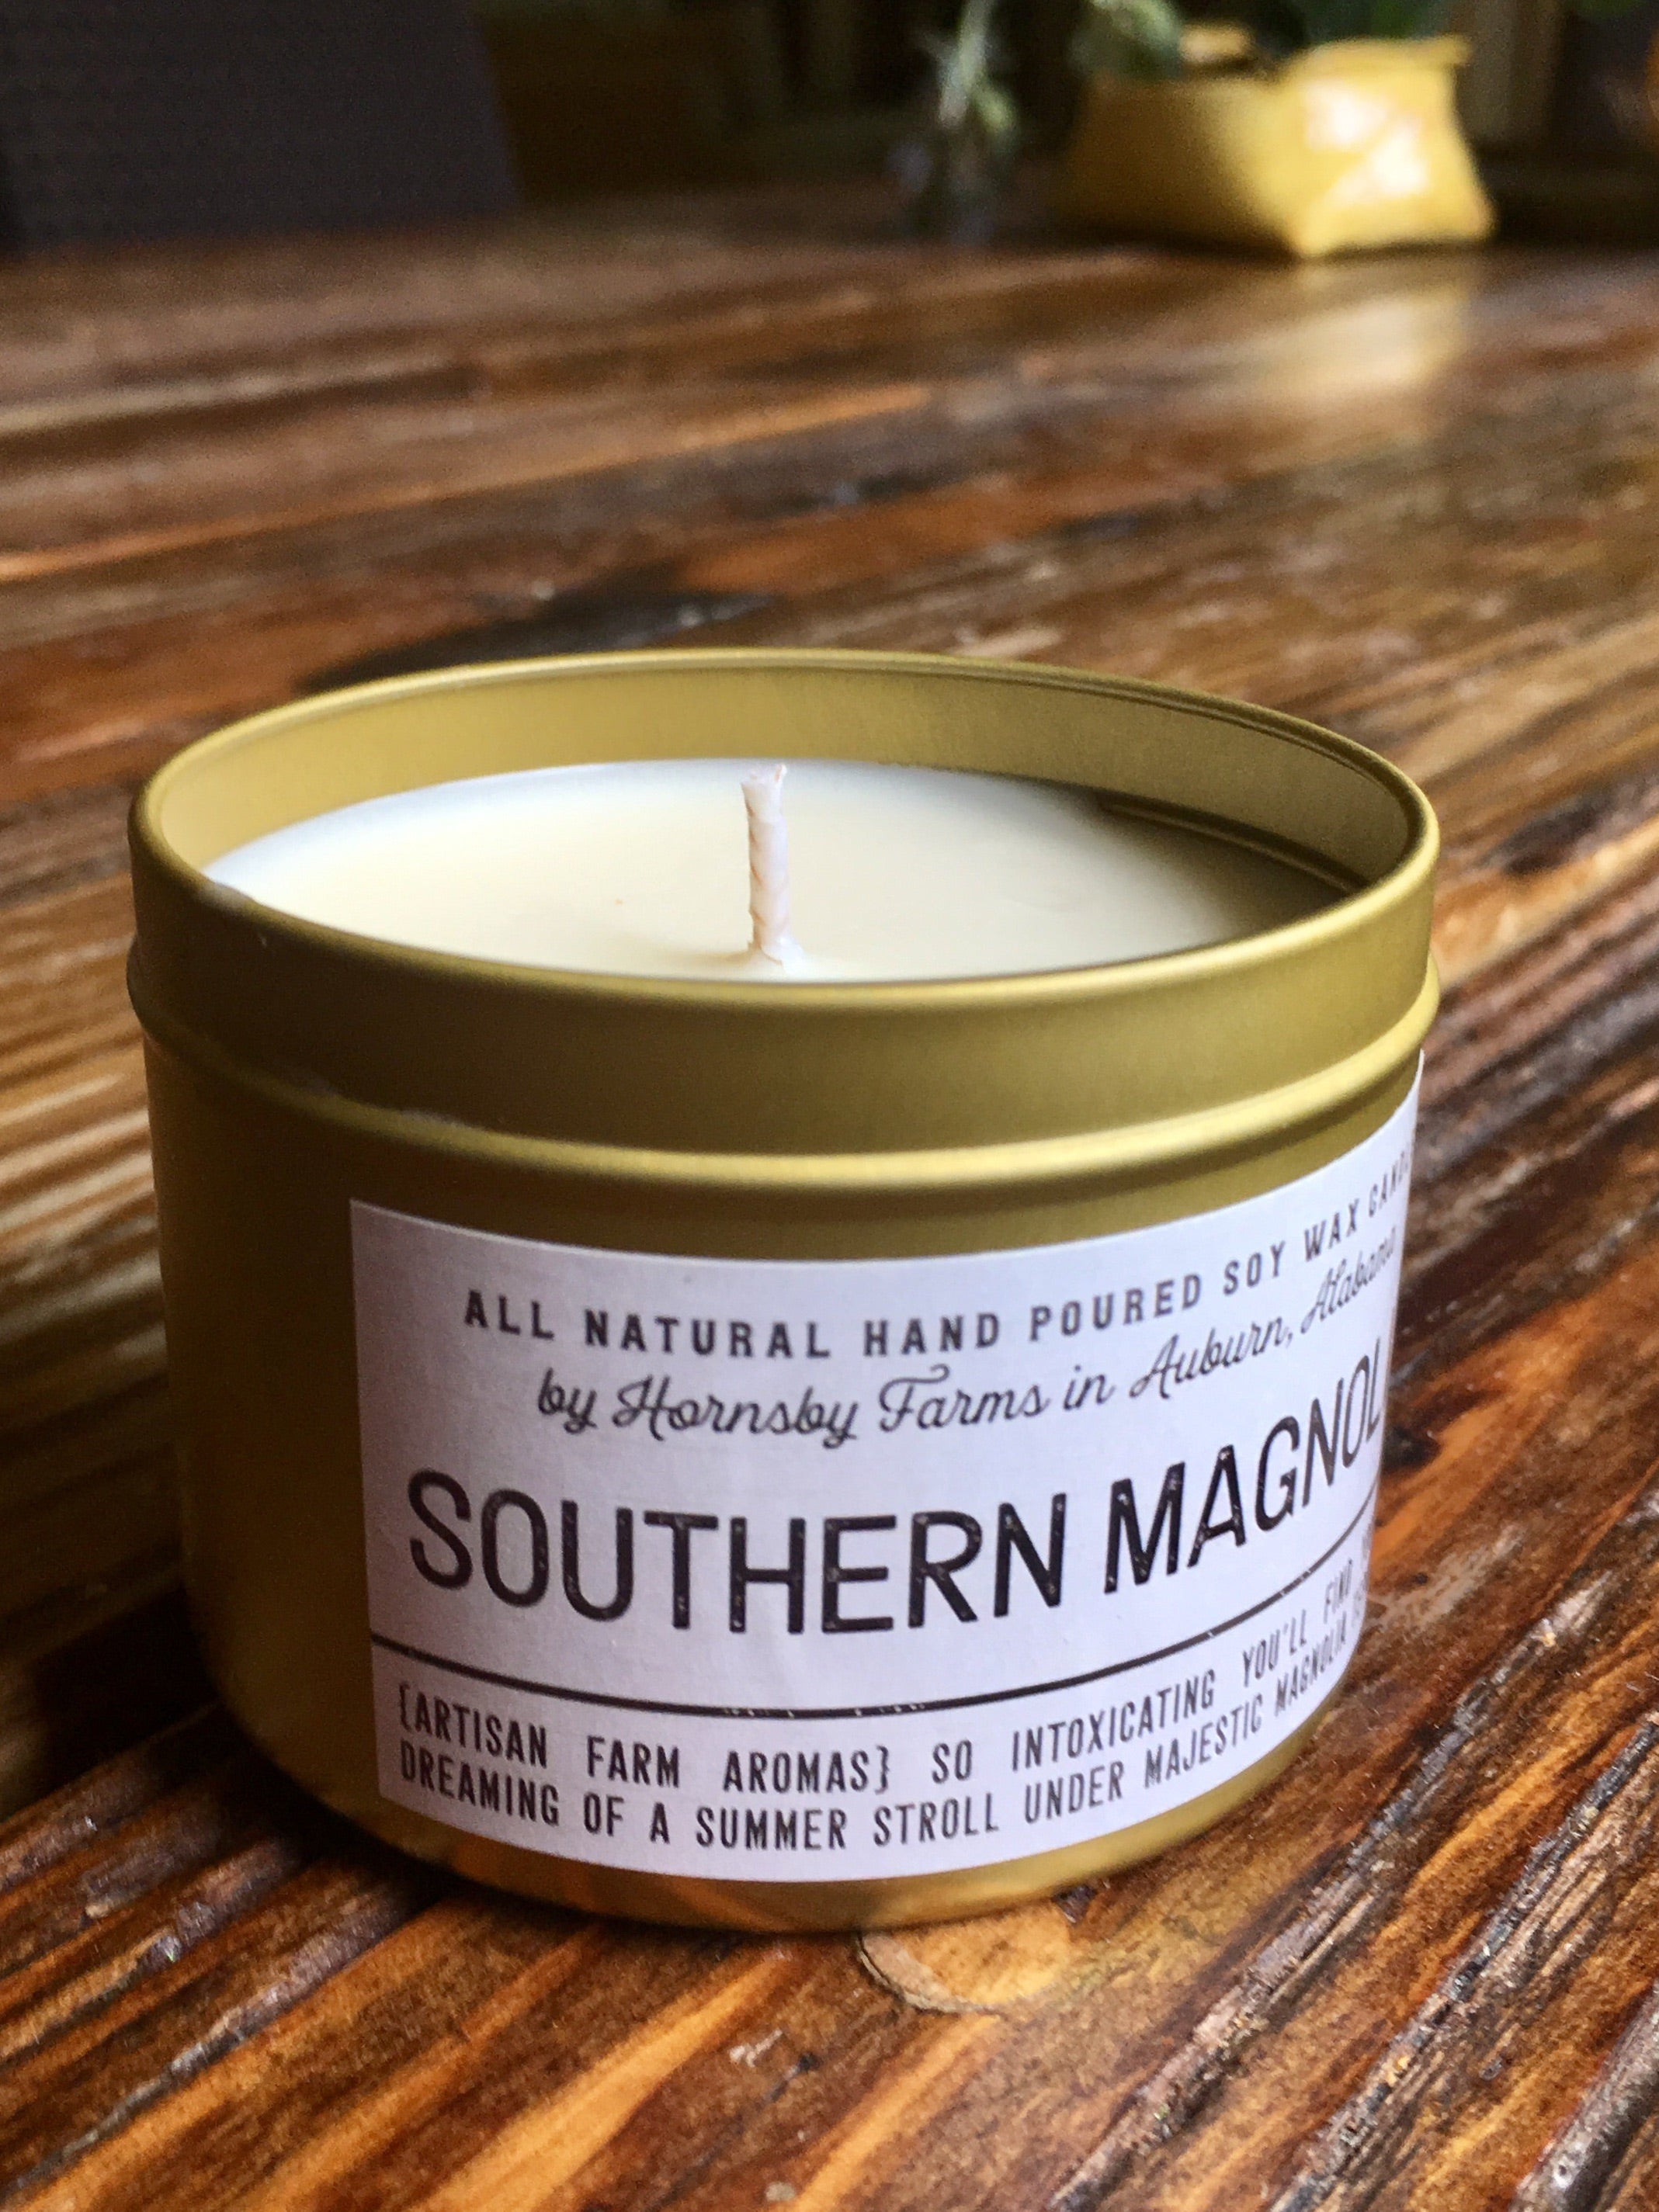 Southern magnolia Soy Candle